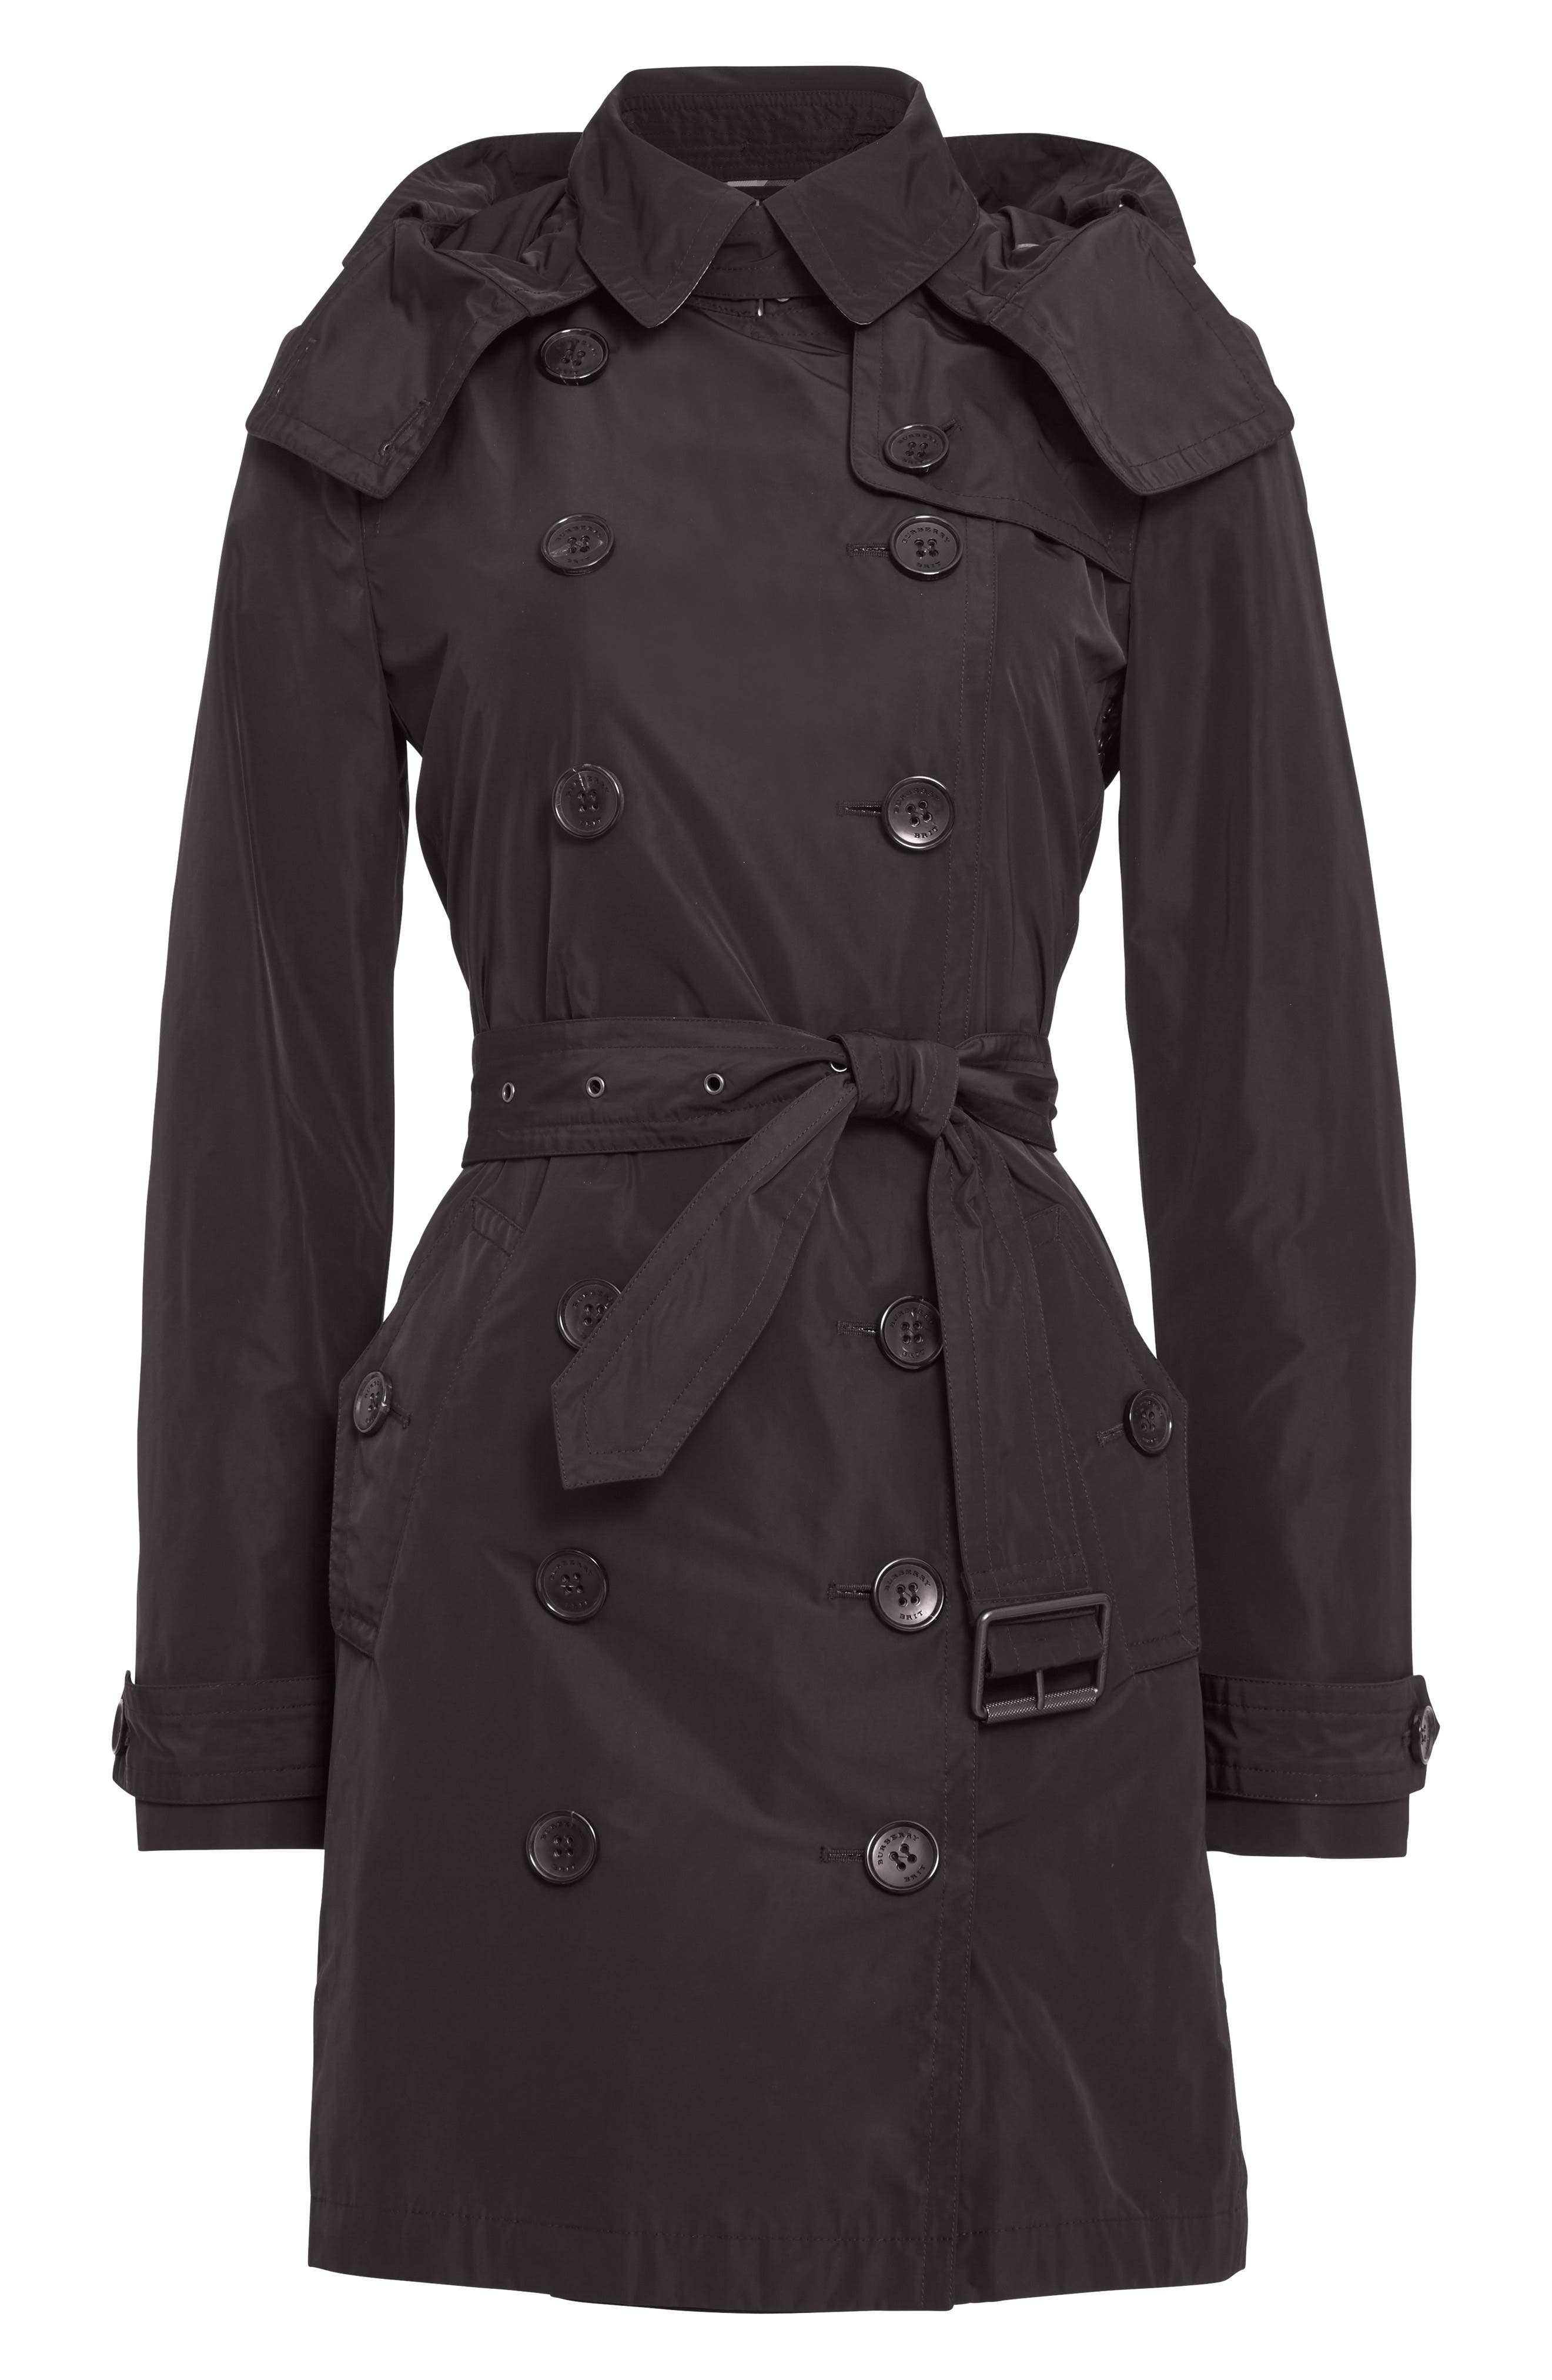 BURBERRY, Balmoral Packable Trench, Alternate thumbnail 7, color, 001